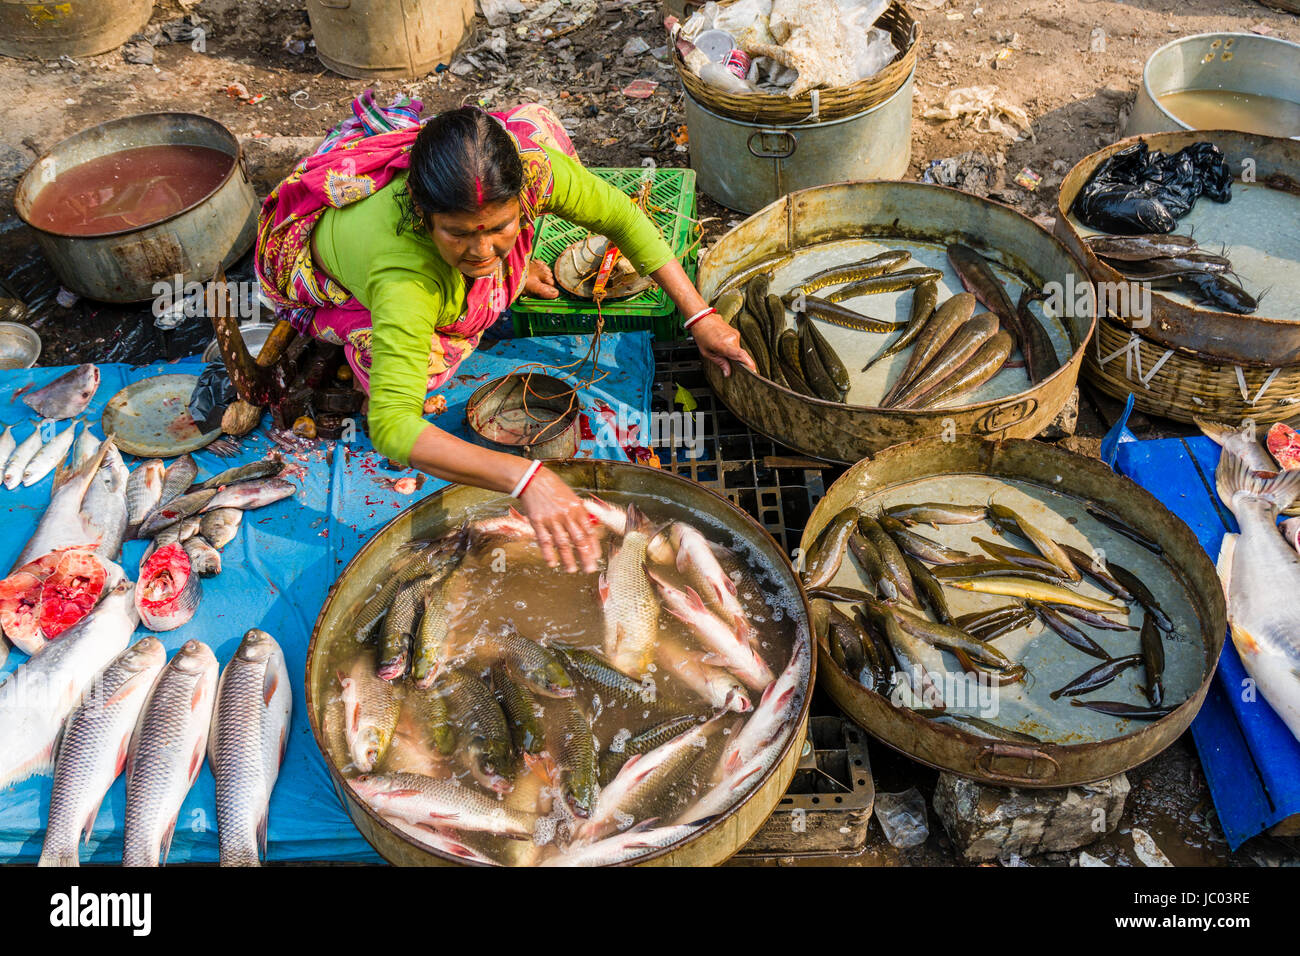 A woman is selling fish on a busy vegetable market street in the suburb New Market - Stock Image